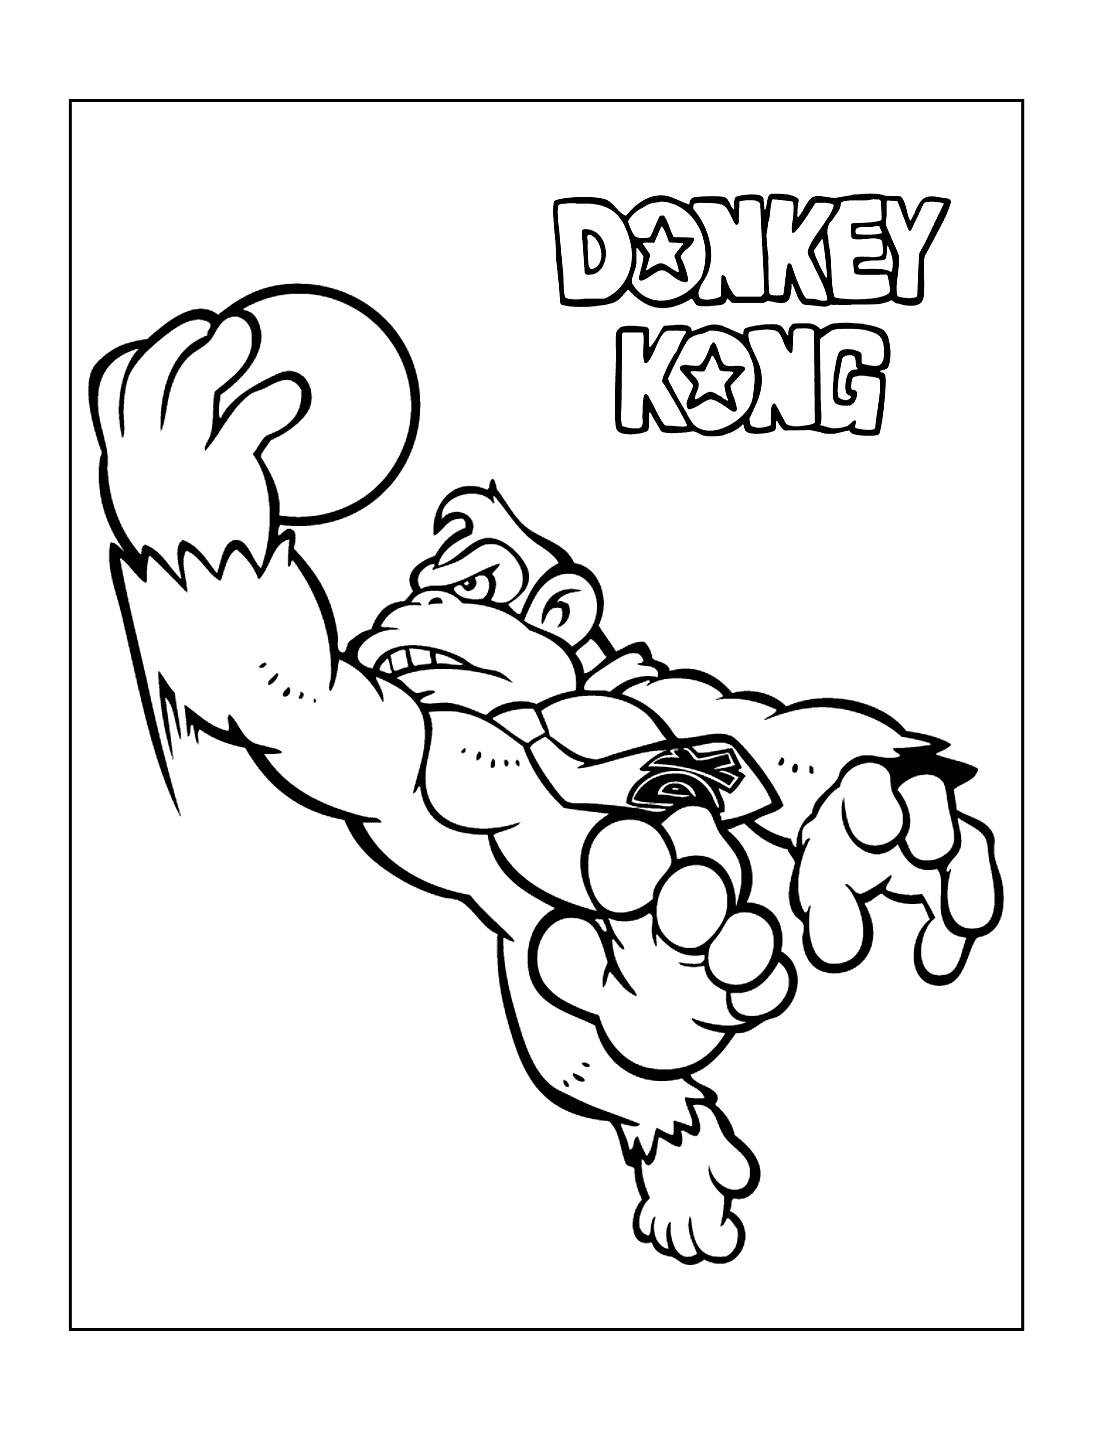 Pin By Coloring Rocks On Video Game Coloring Pages Coloring Pages Donkey Kong Color